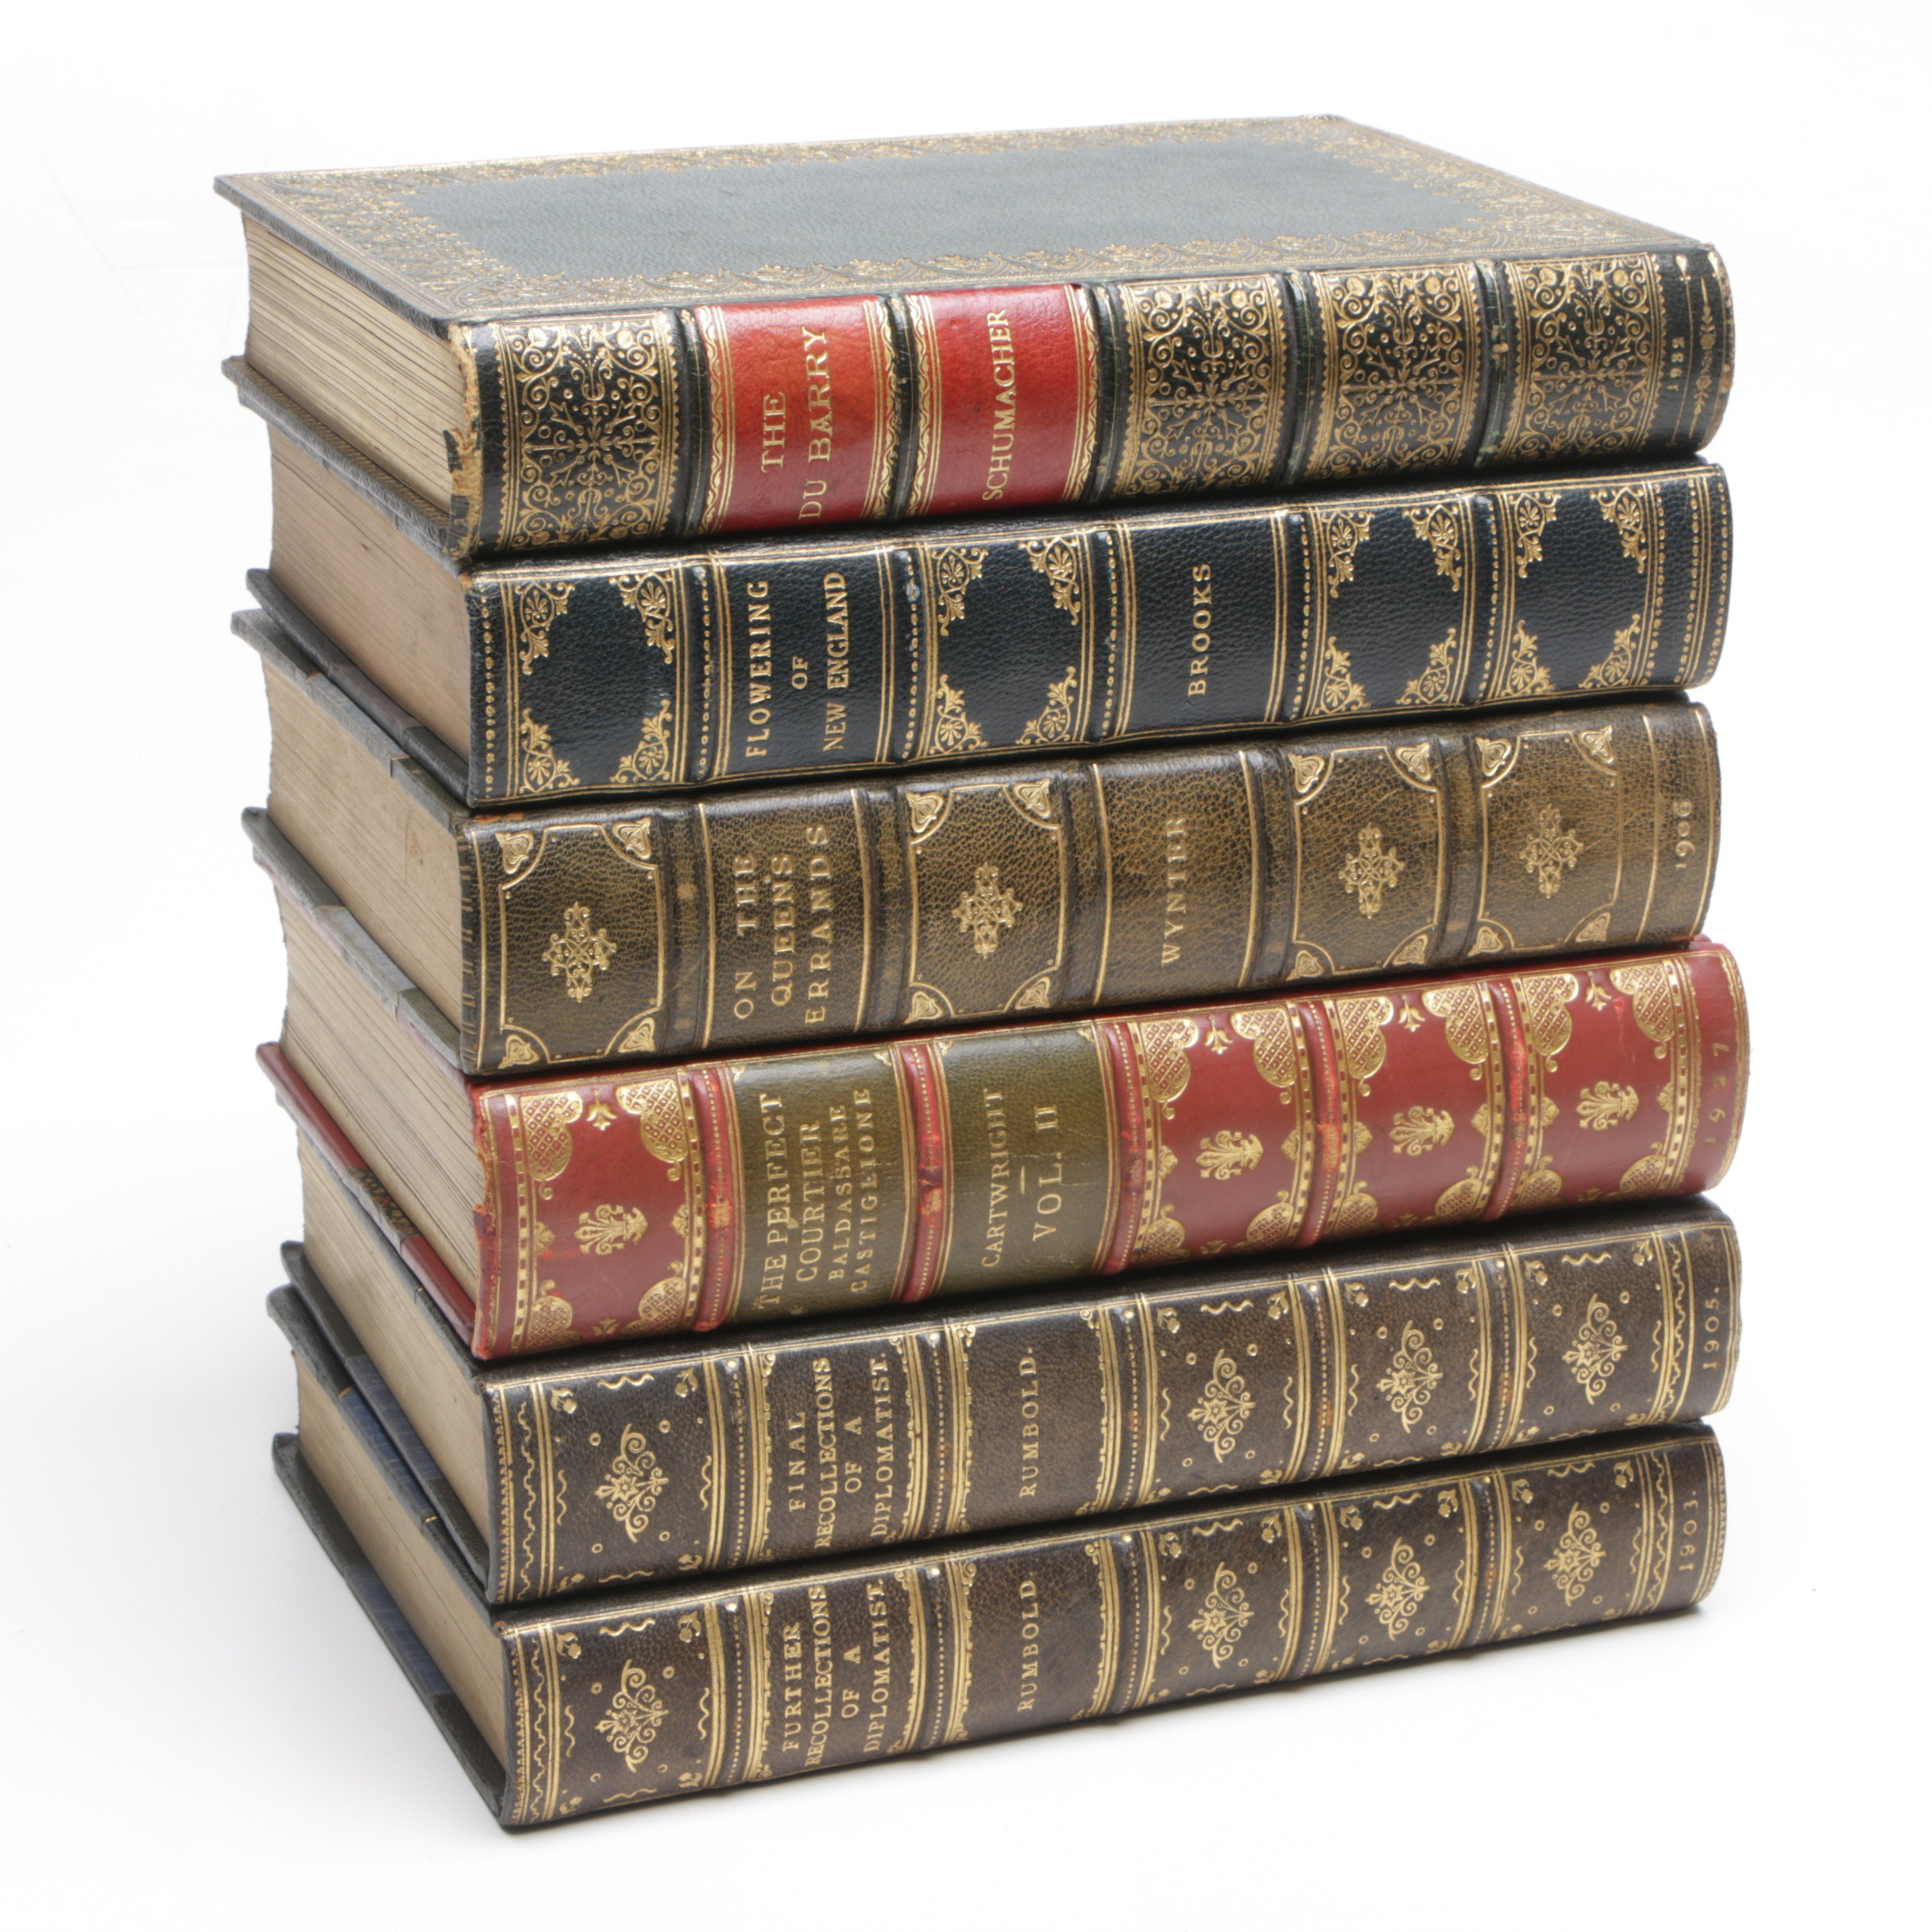 """""""The Du Barr"""", """"Flowering of New England""""and Other Antiquarian Non-Fiction Books"""